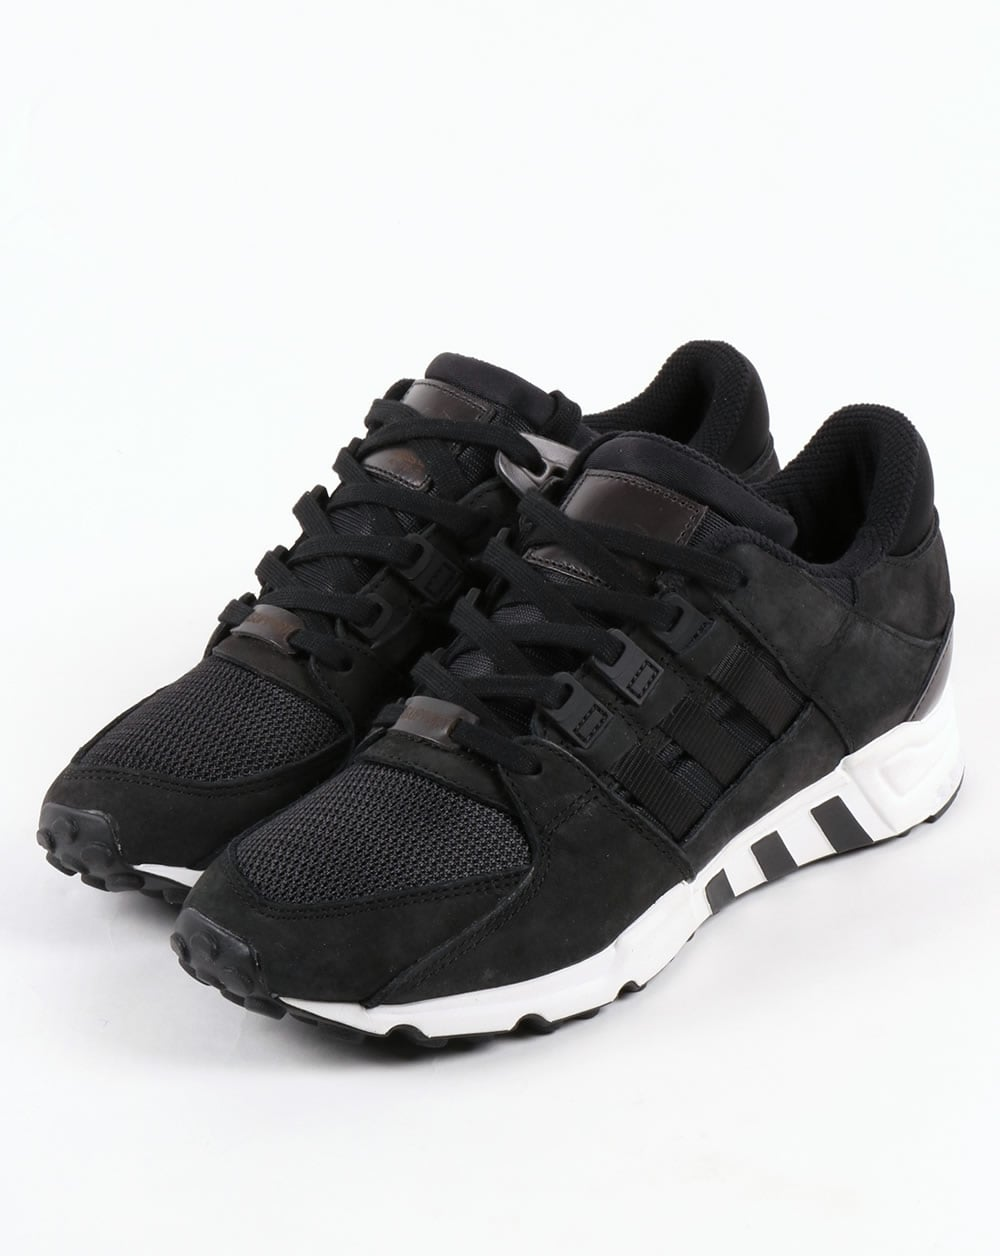 the latest 77dc7 18a6e Adidas EQT Support RF Trainers Black/Black